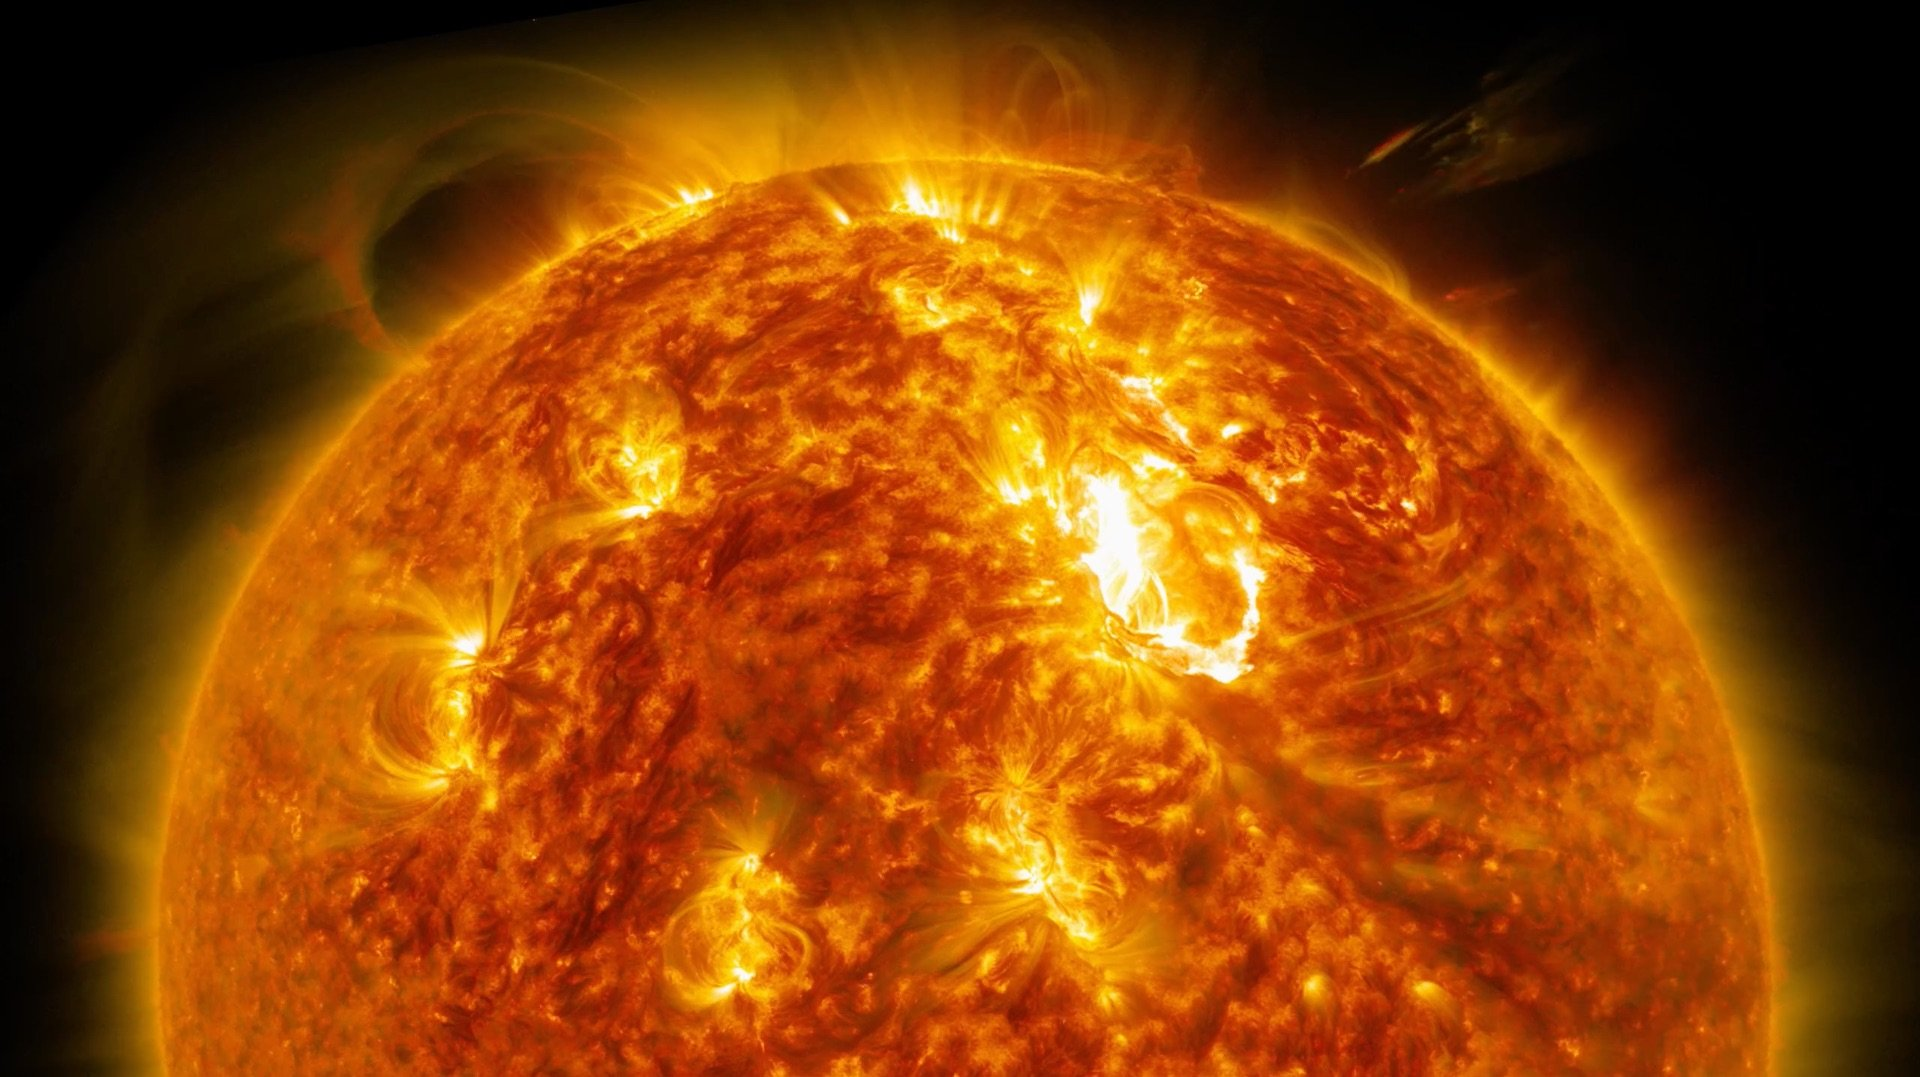 Let's turn the sun into a gigantic engine!